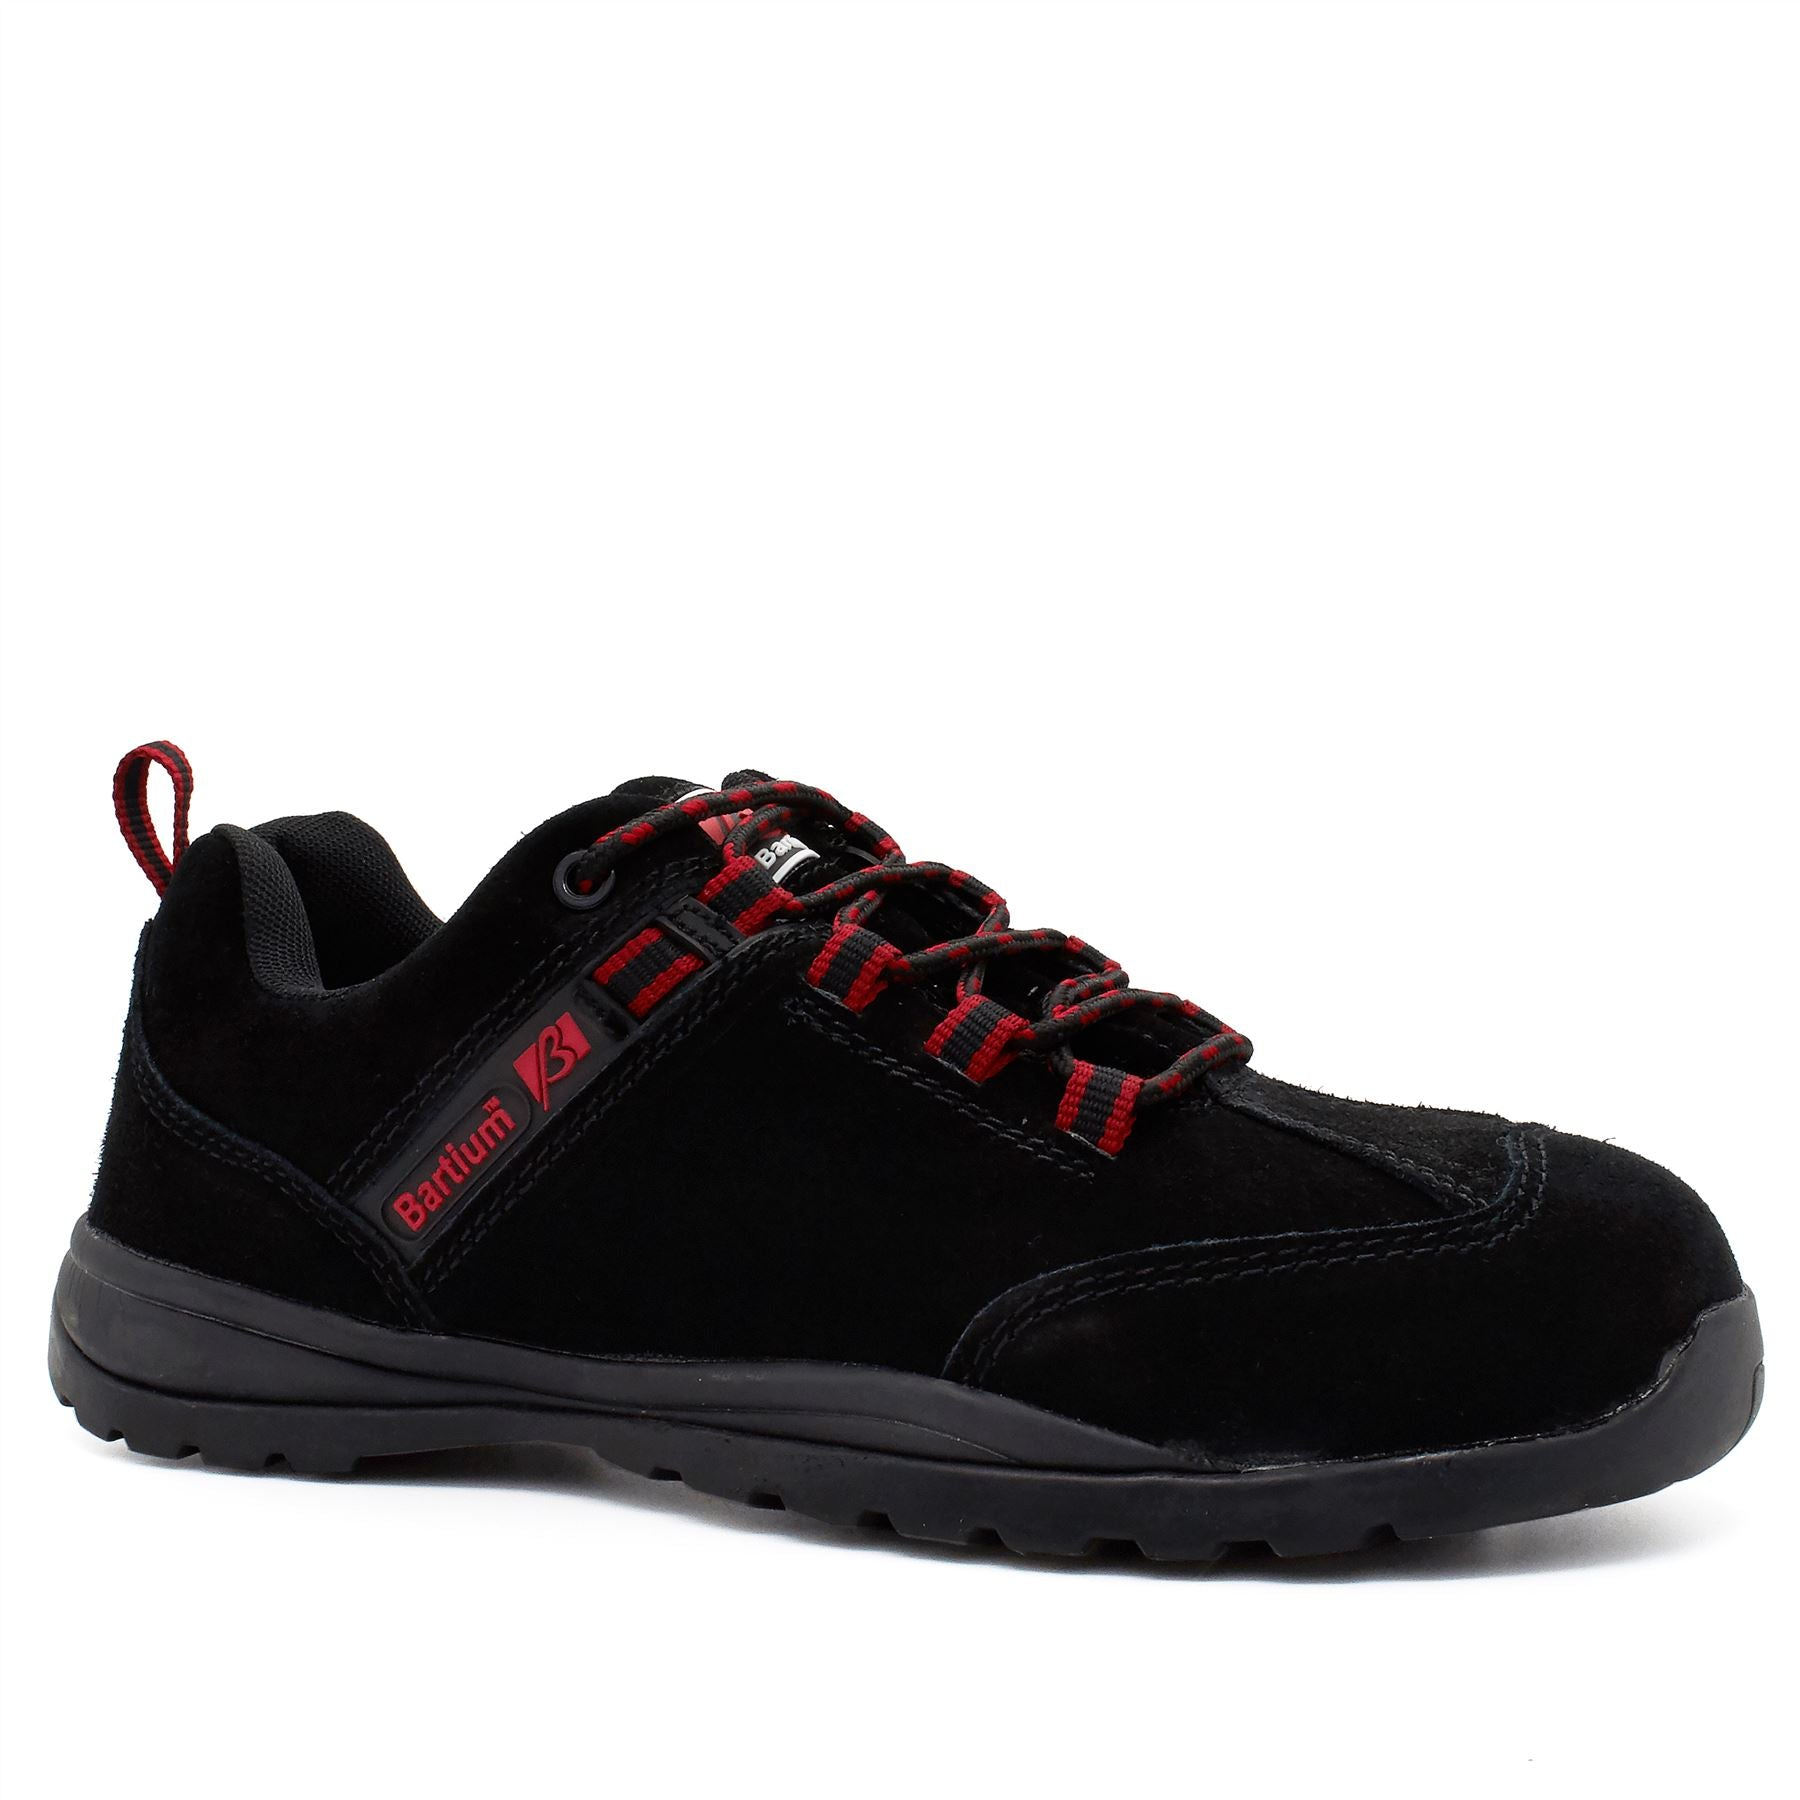 Black Suede Composite Safety Trainers